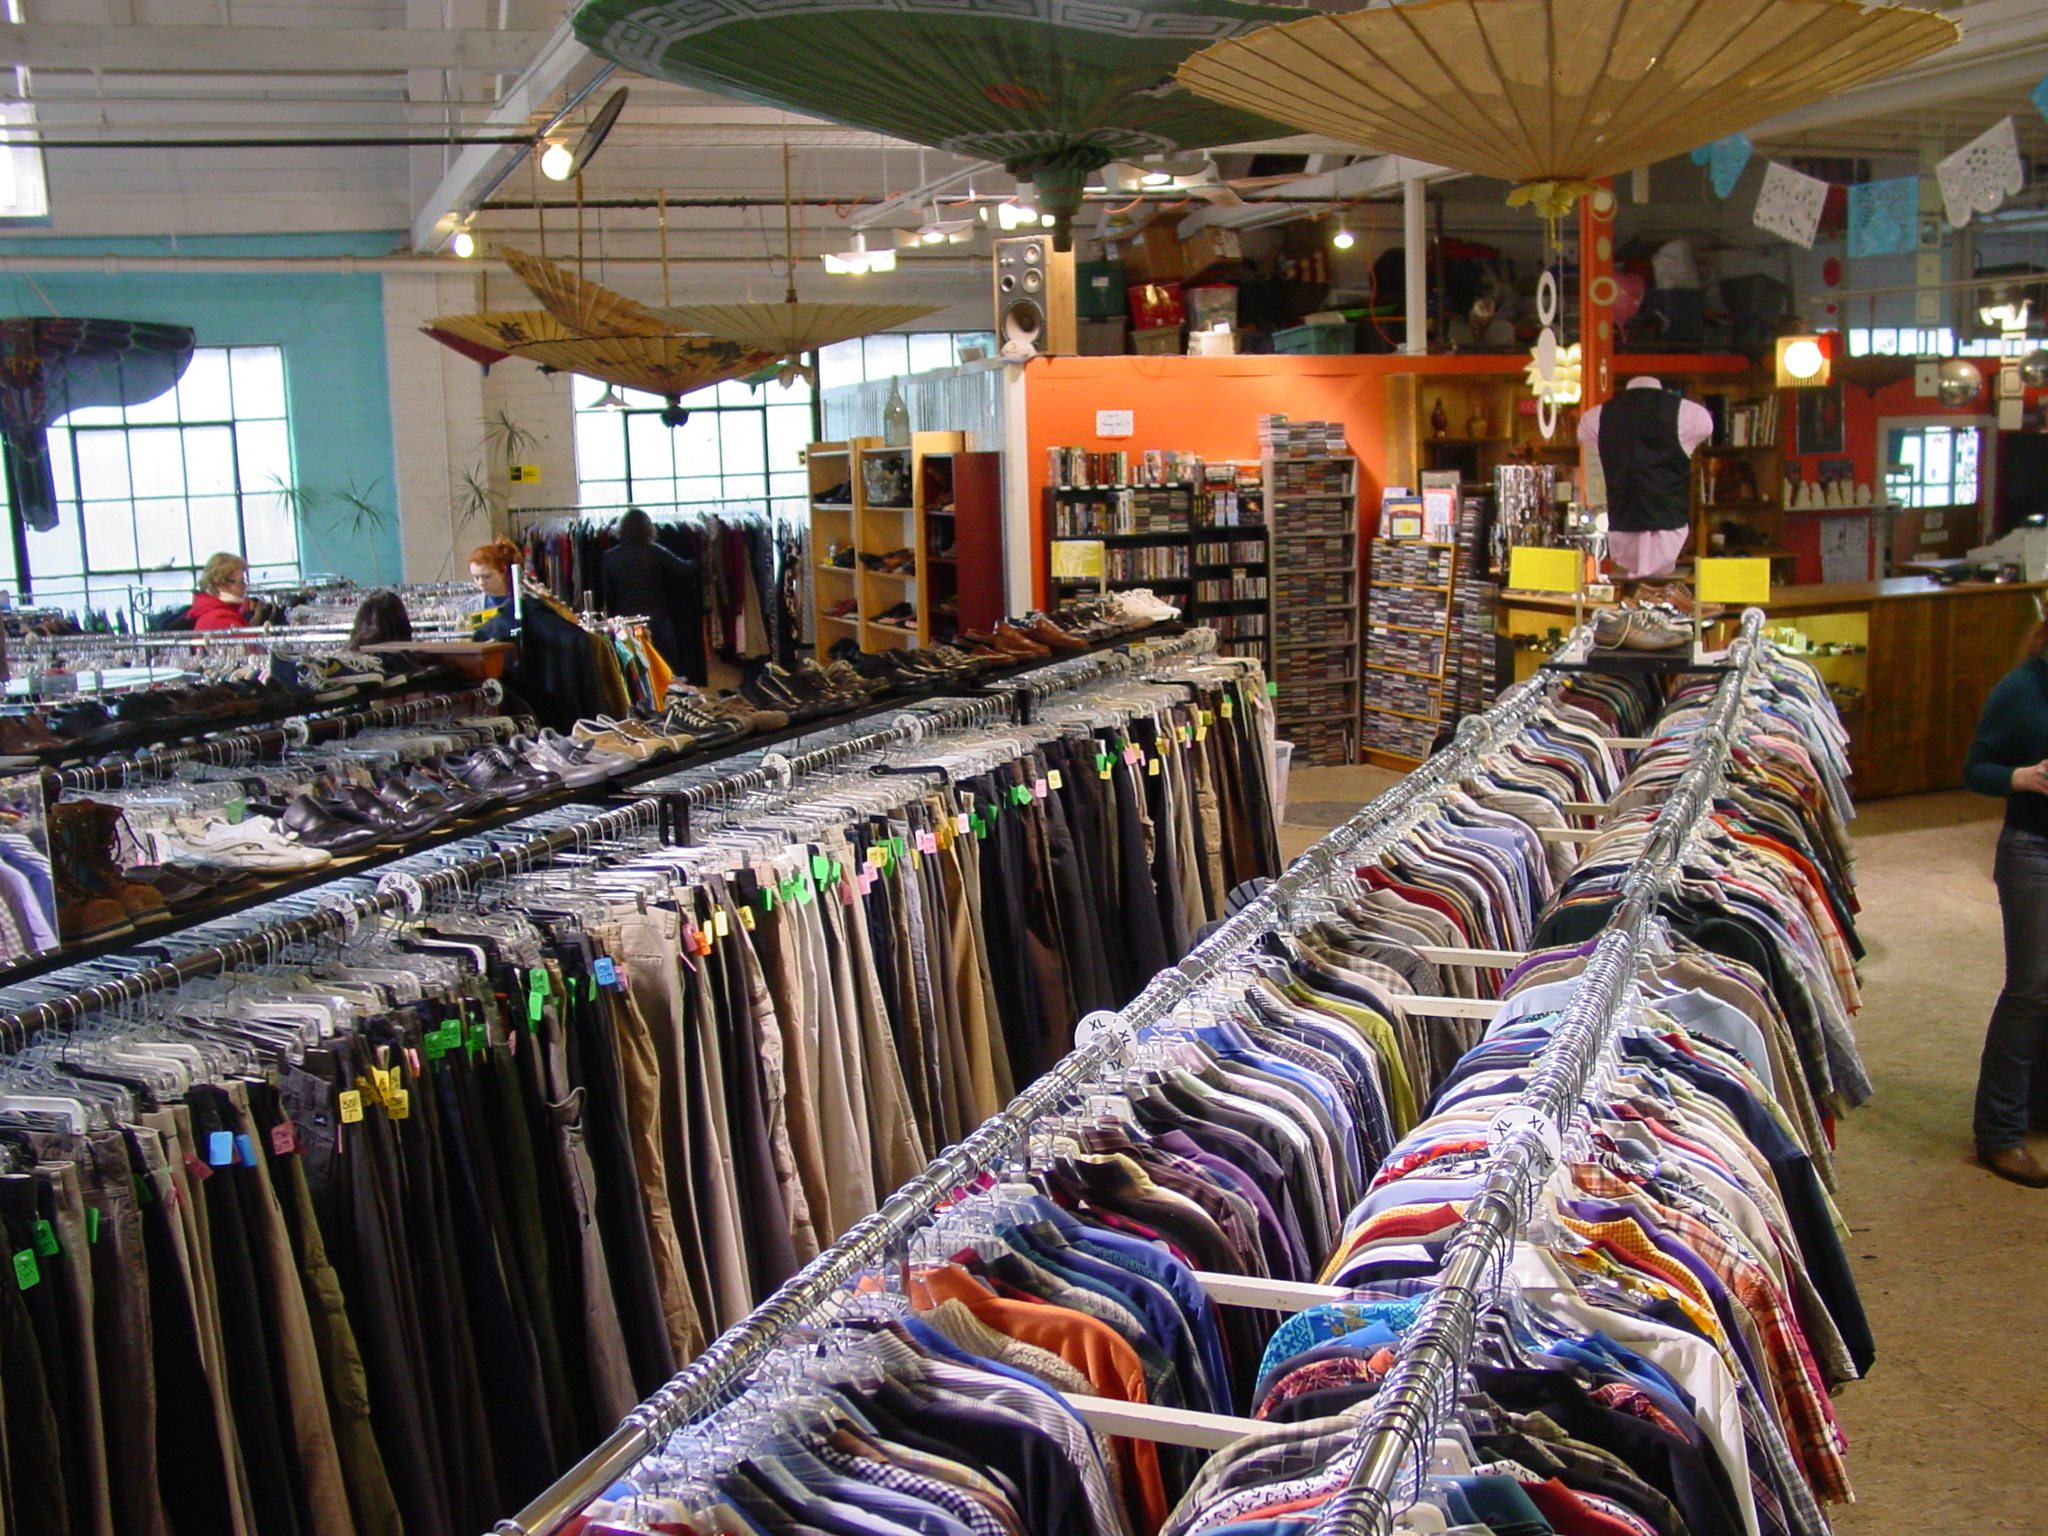 Items That You Should Shop For At The Thrift Store